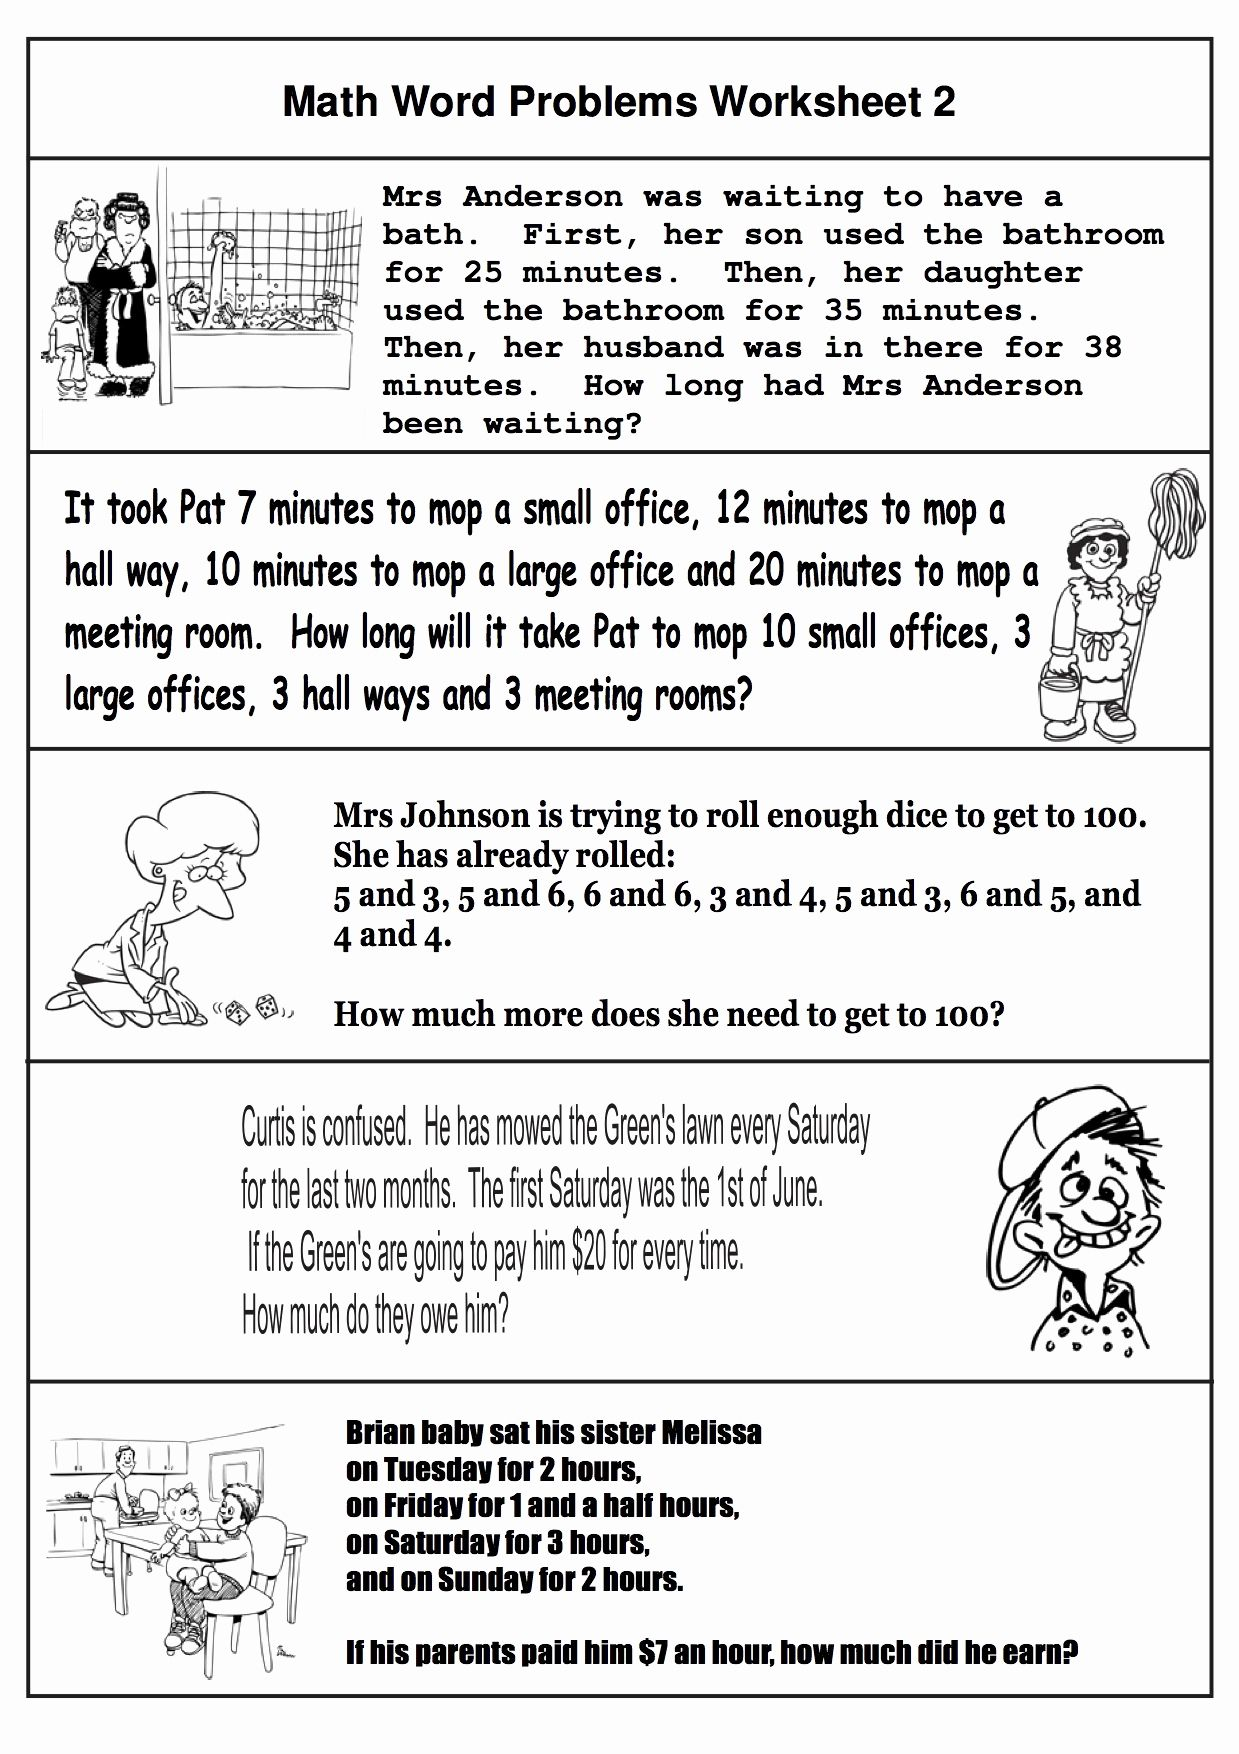 12 Step Recovery Worksheet